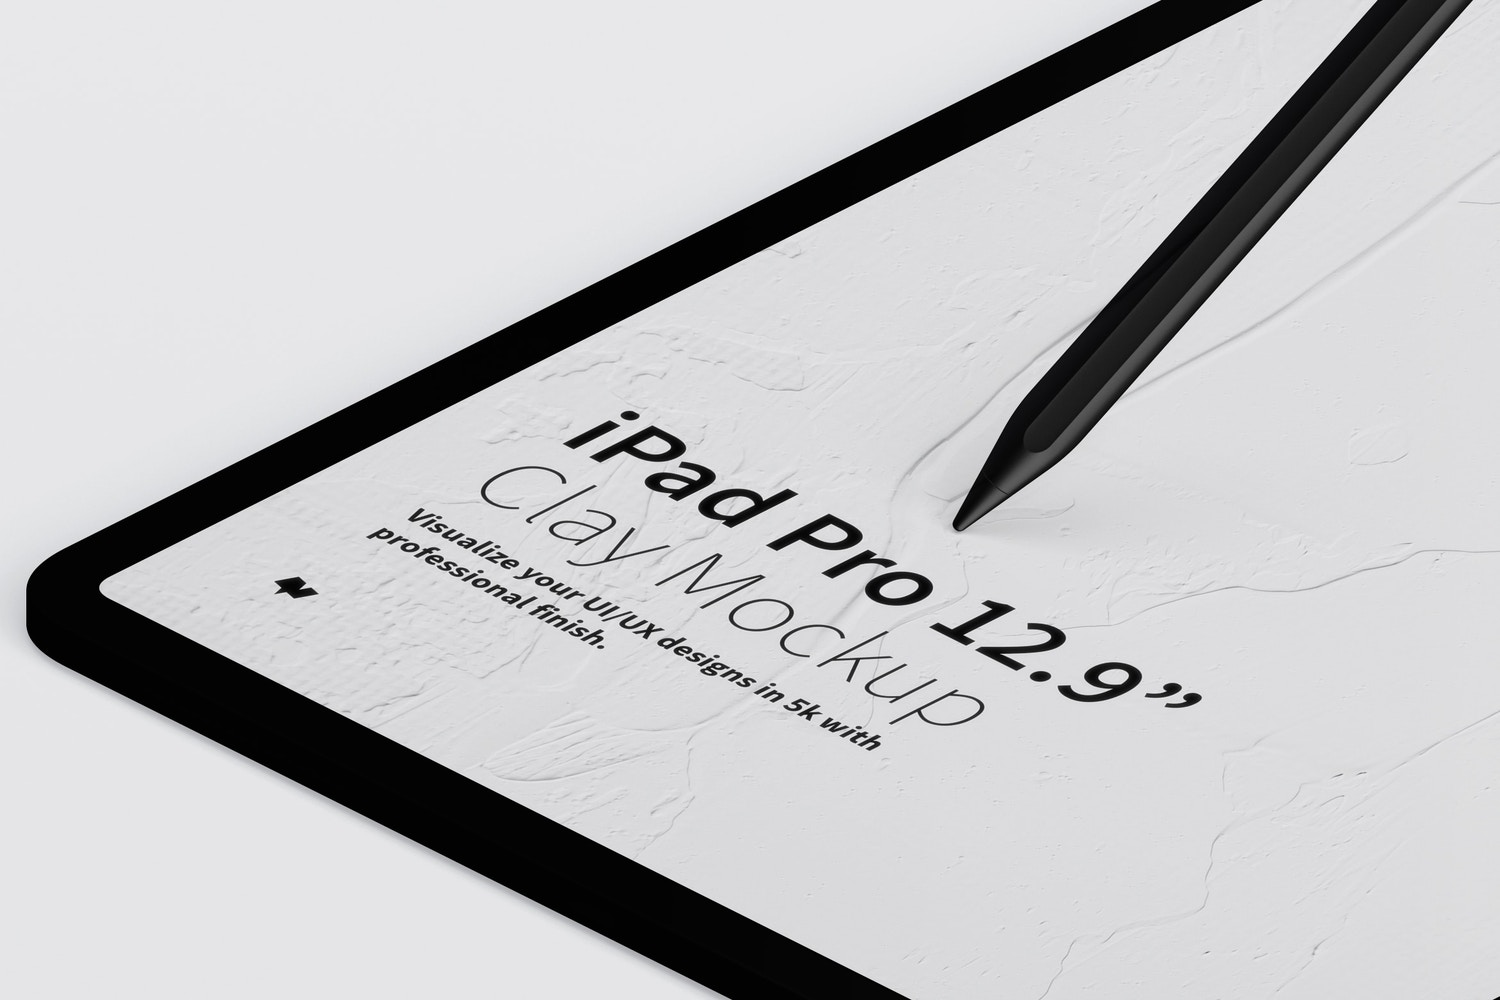 """Clay iPad Pro 12.9"""" Mockup, Isometric Right View (3) by Original Mockups on Original Mockups"""